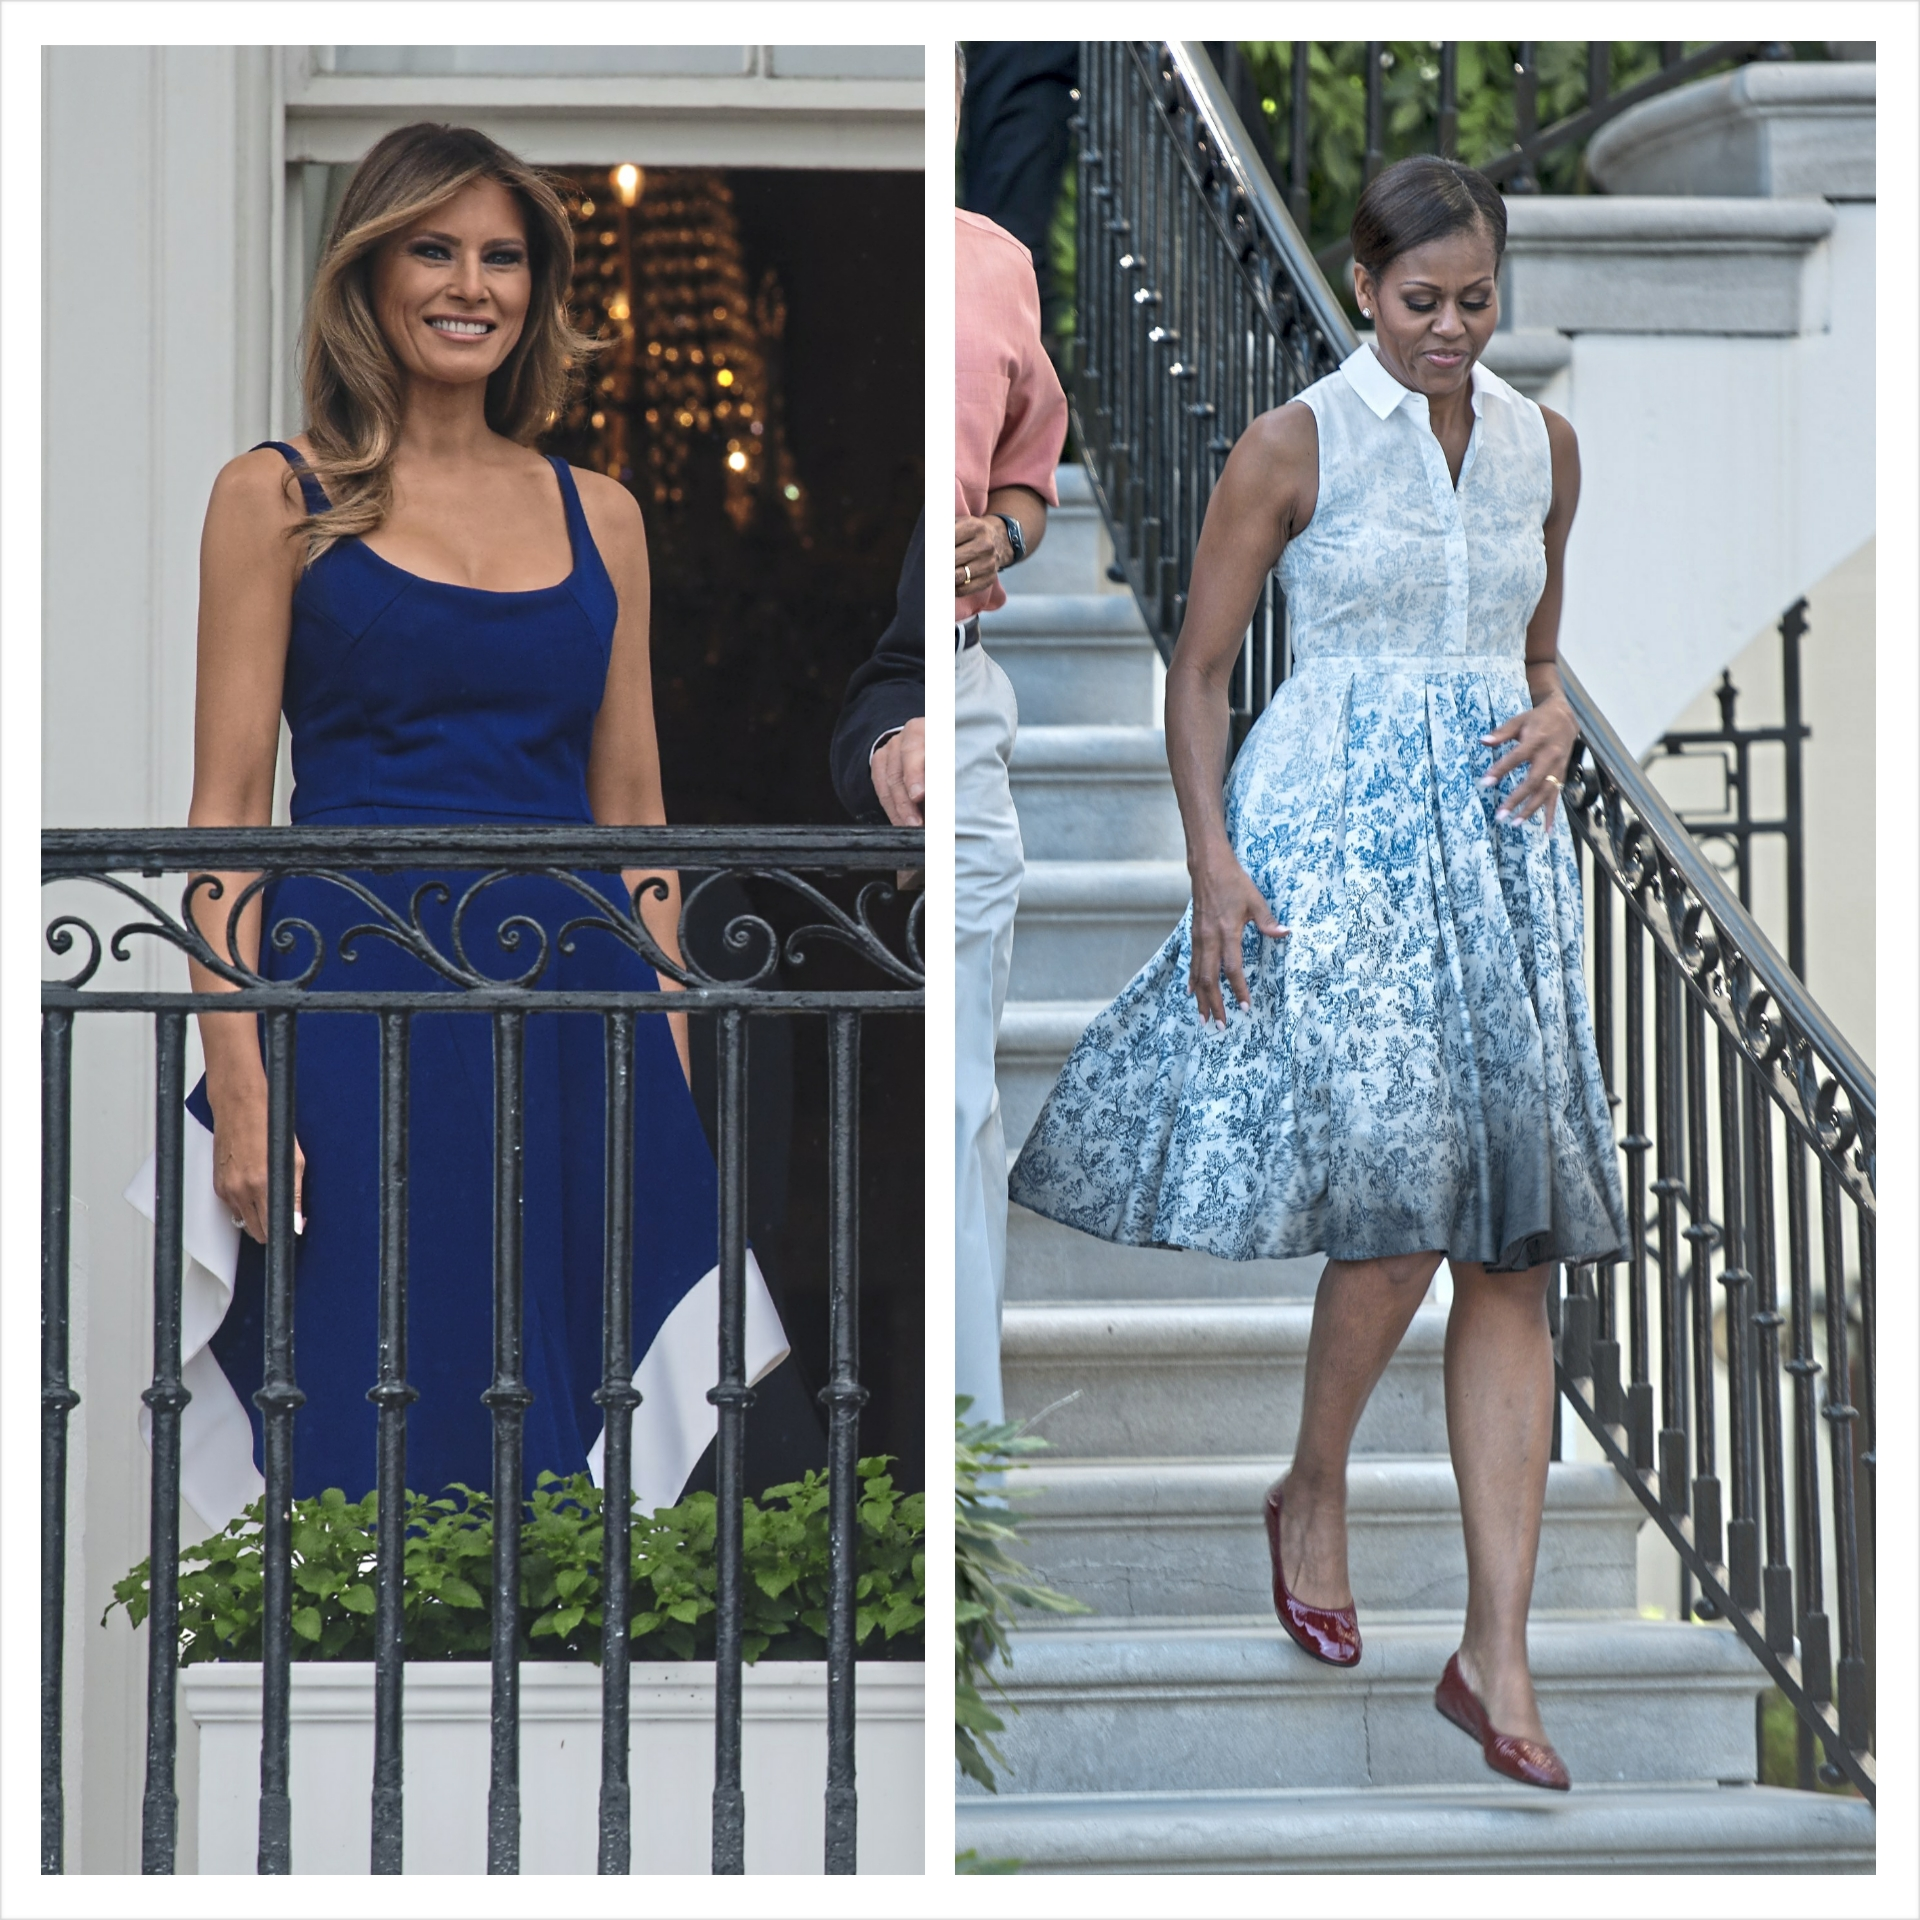 The Politics Of Style What Messages Do First Ladies Send Through Their Fashions Pittsburgh Post Gazette